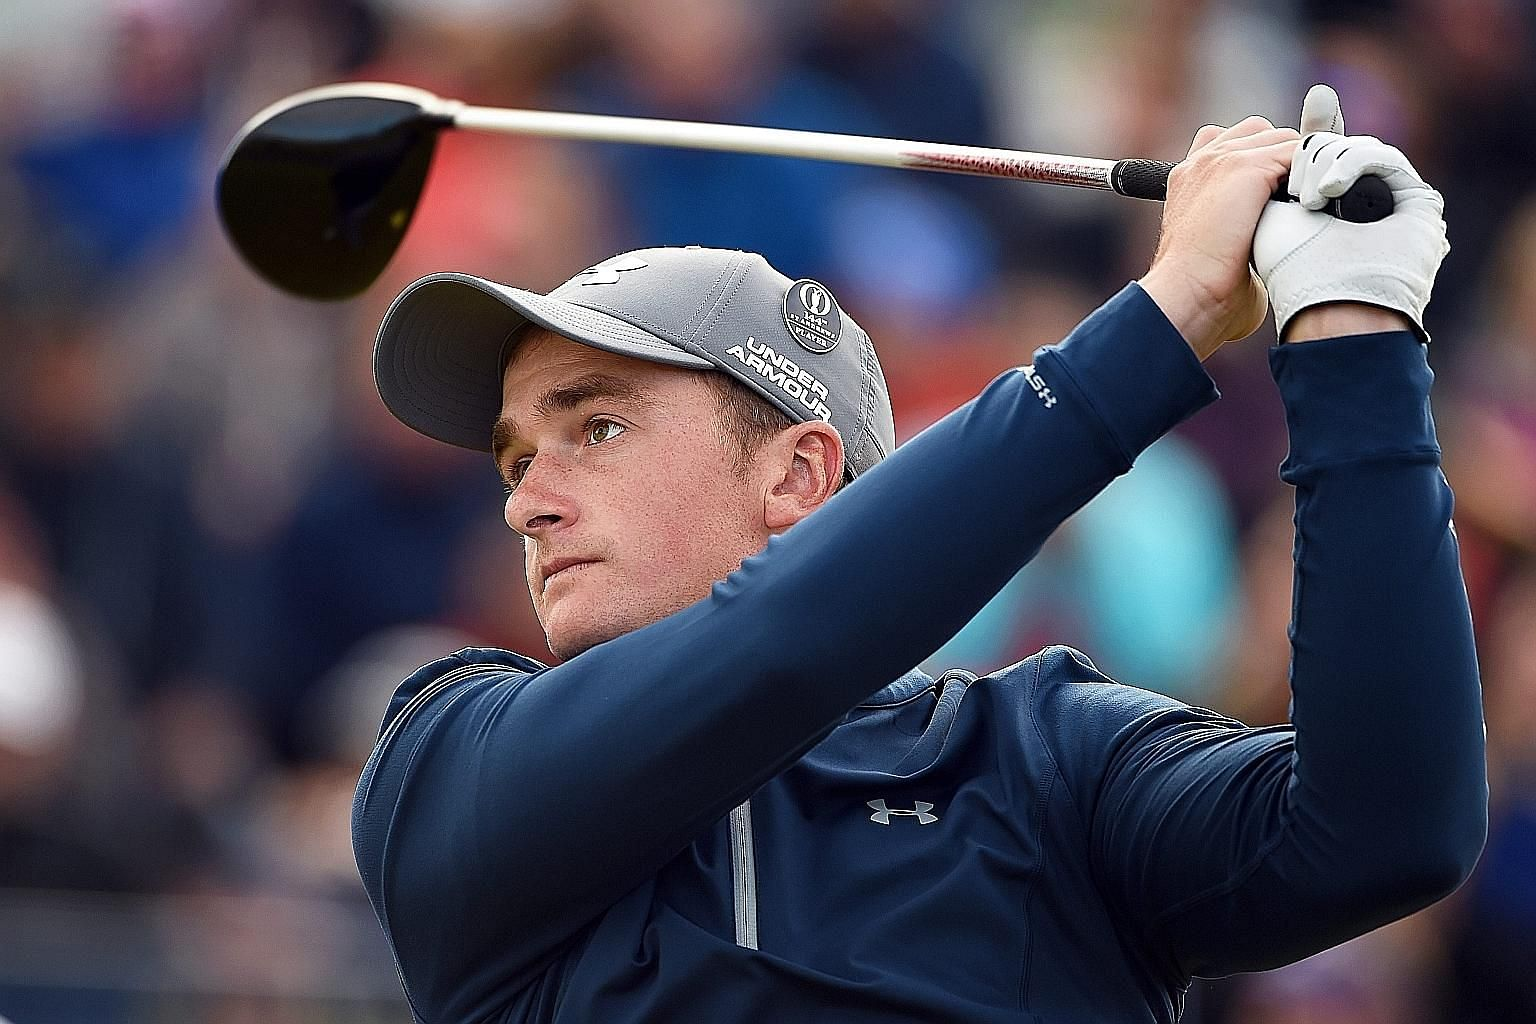 Ireland's Paul Dunne teeing off in the third round of the British Open. He had led Masters and US Open winner Jordan Spieth by a shot going into yesterday's delayed final round.